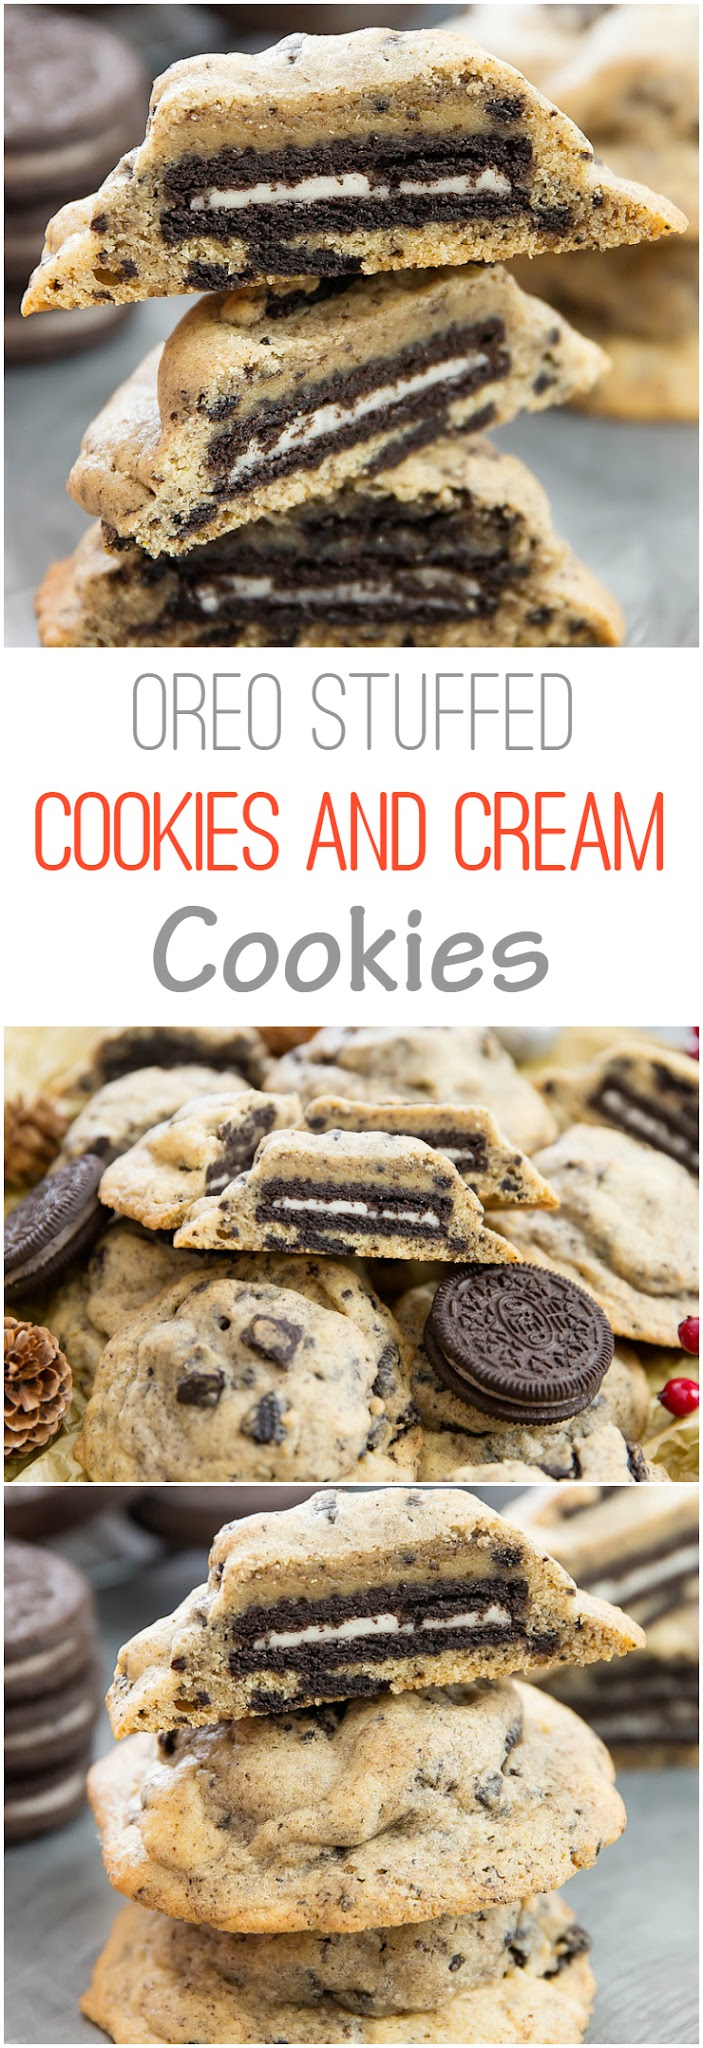 photo collage of oreo stuffed cookies and cream cookies